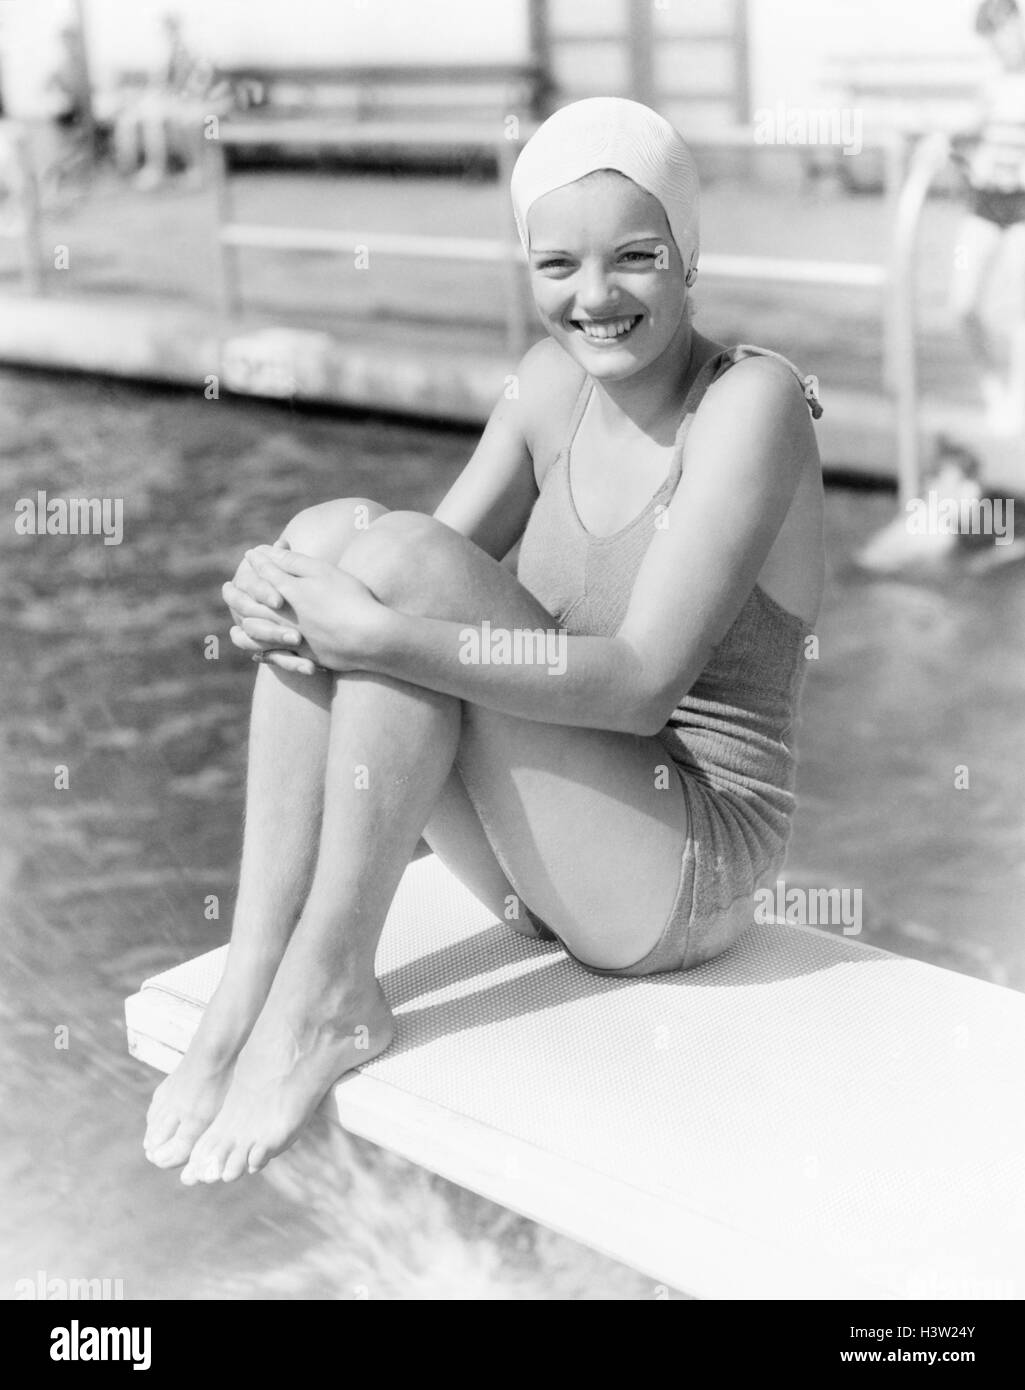 1930s GIRL WEARING BATHING SUIT AND SWIM CAP SITTING ON DIVING BOARD HOLDING KNEES LOOKING AT CAMERA - Stock Image